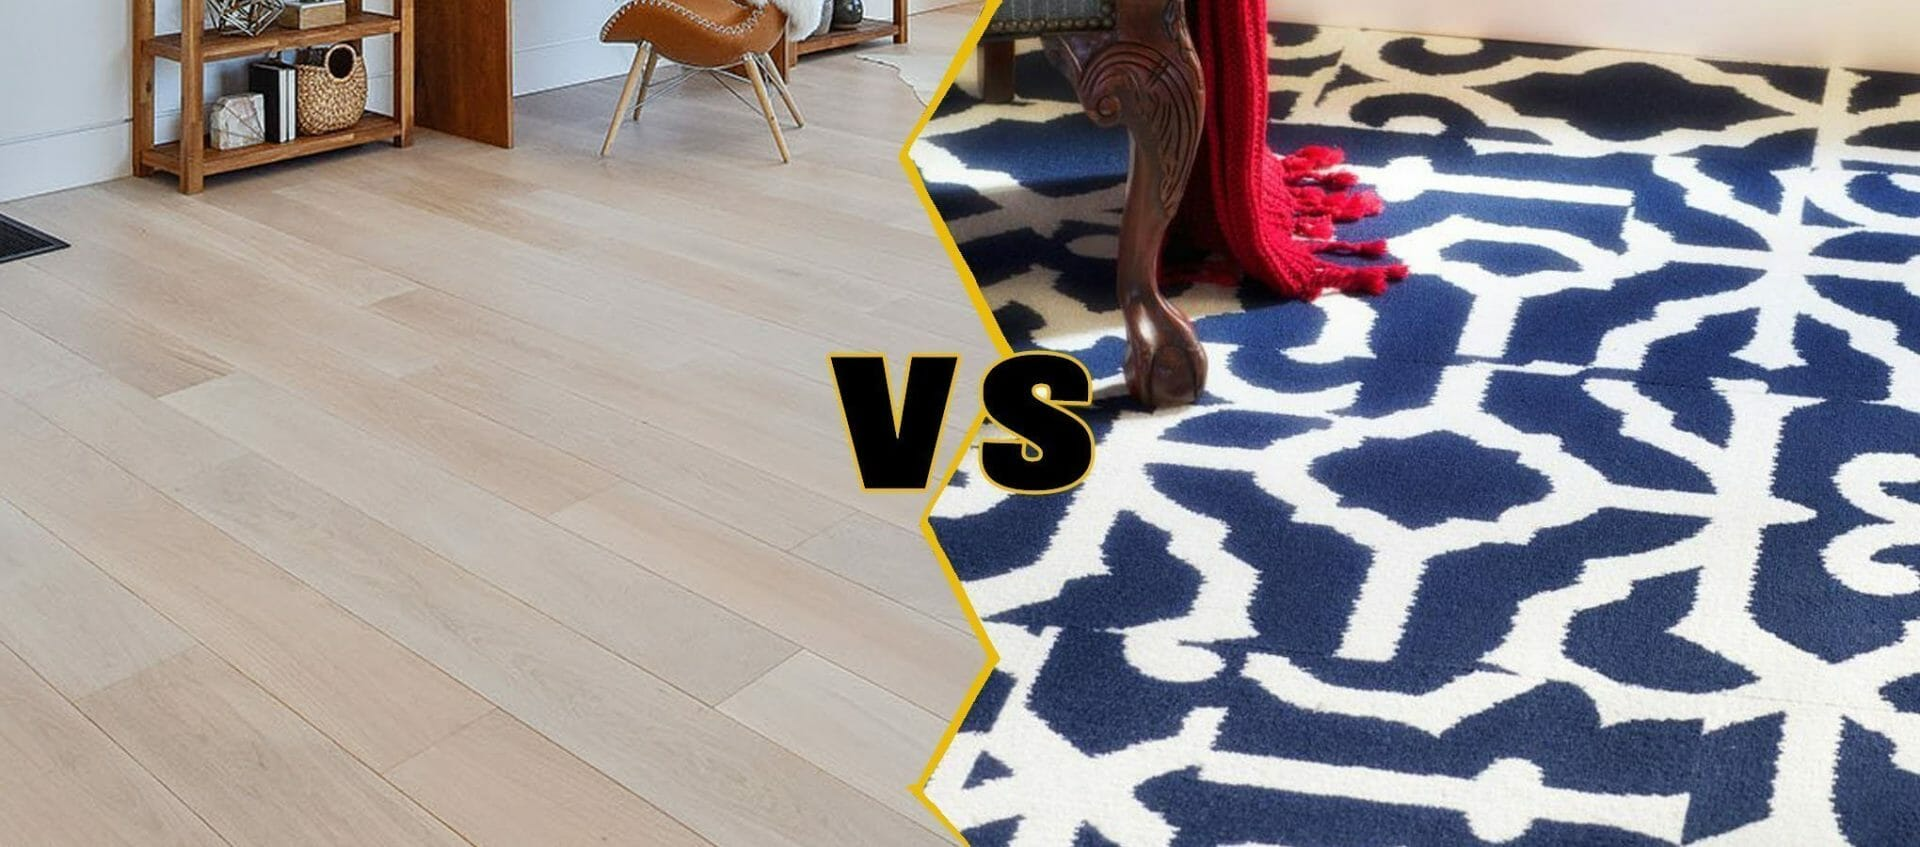 Article - Oak vs. Carpeting